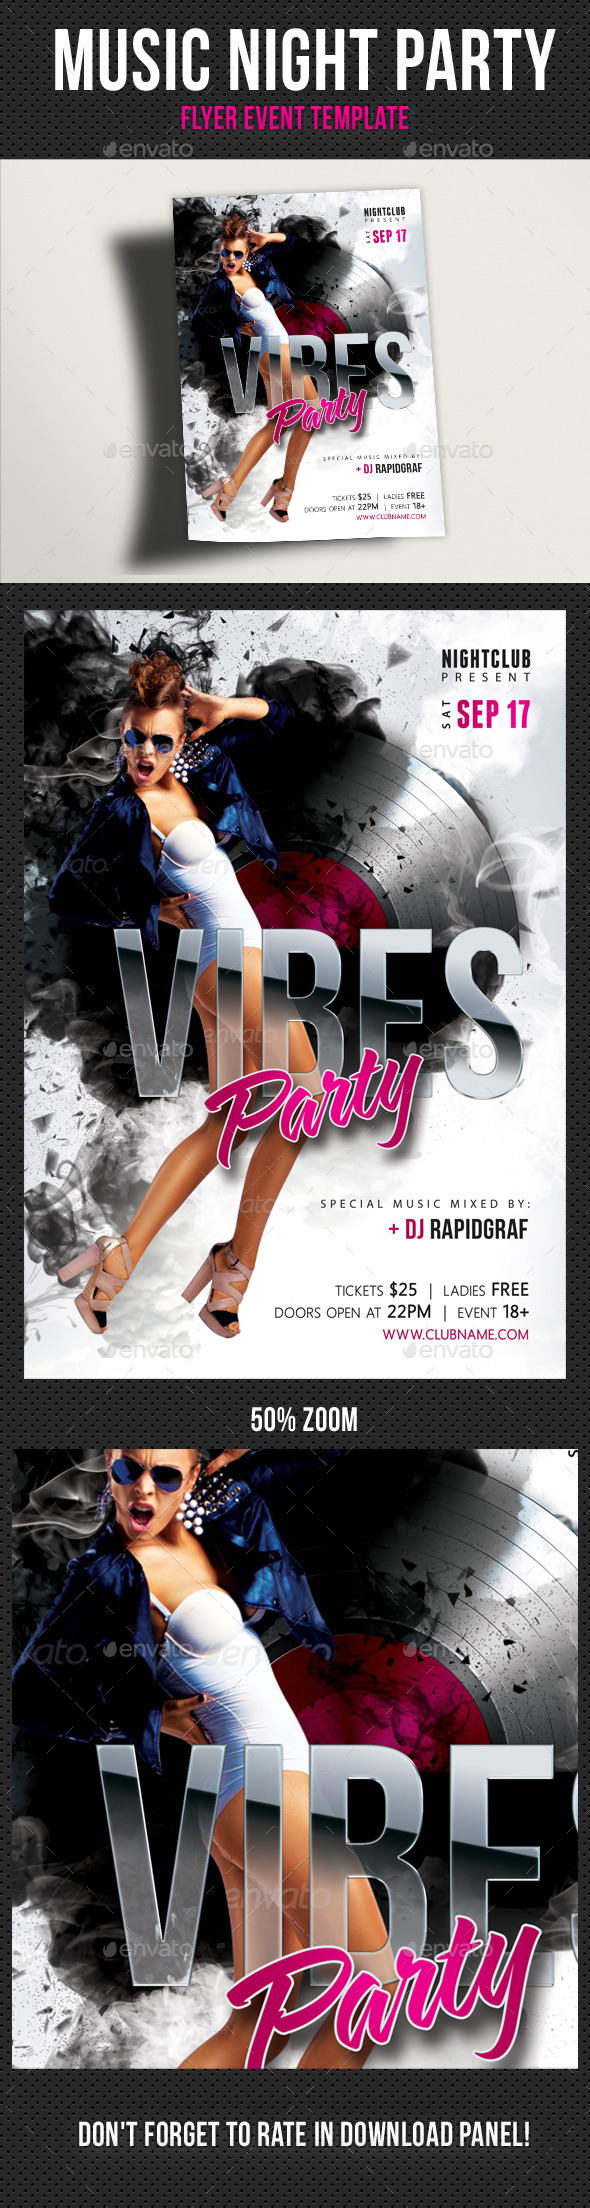 Music Night Party Flyer Template 21 - Clubs & Parties Events